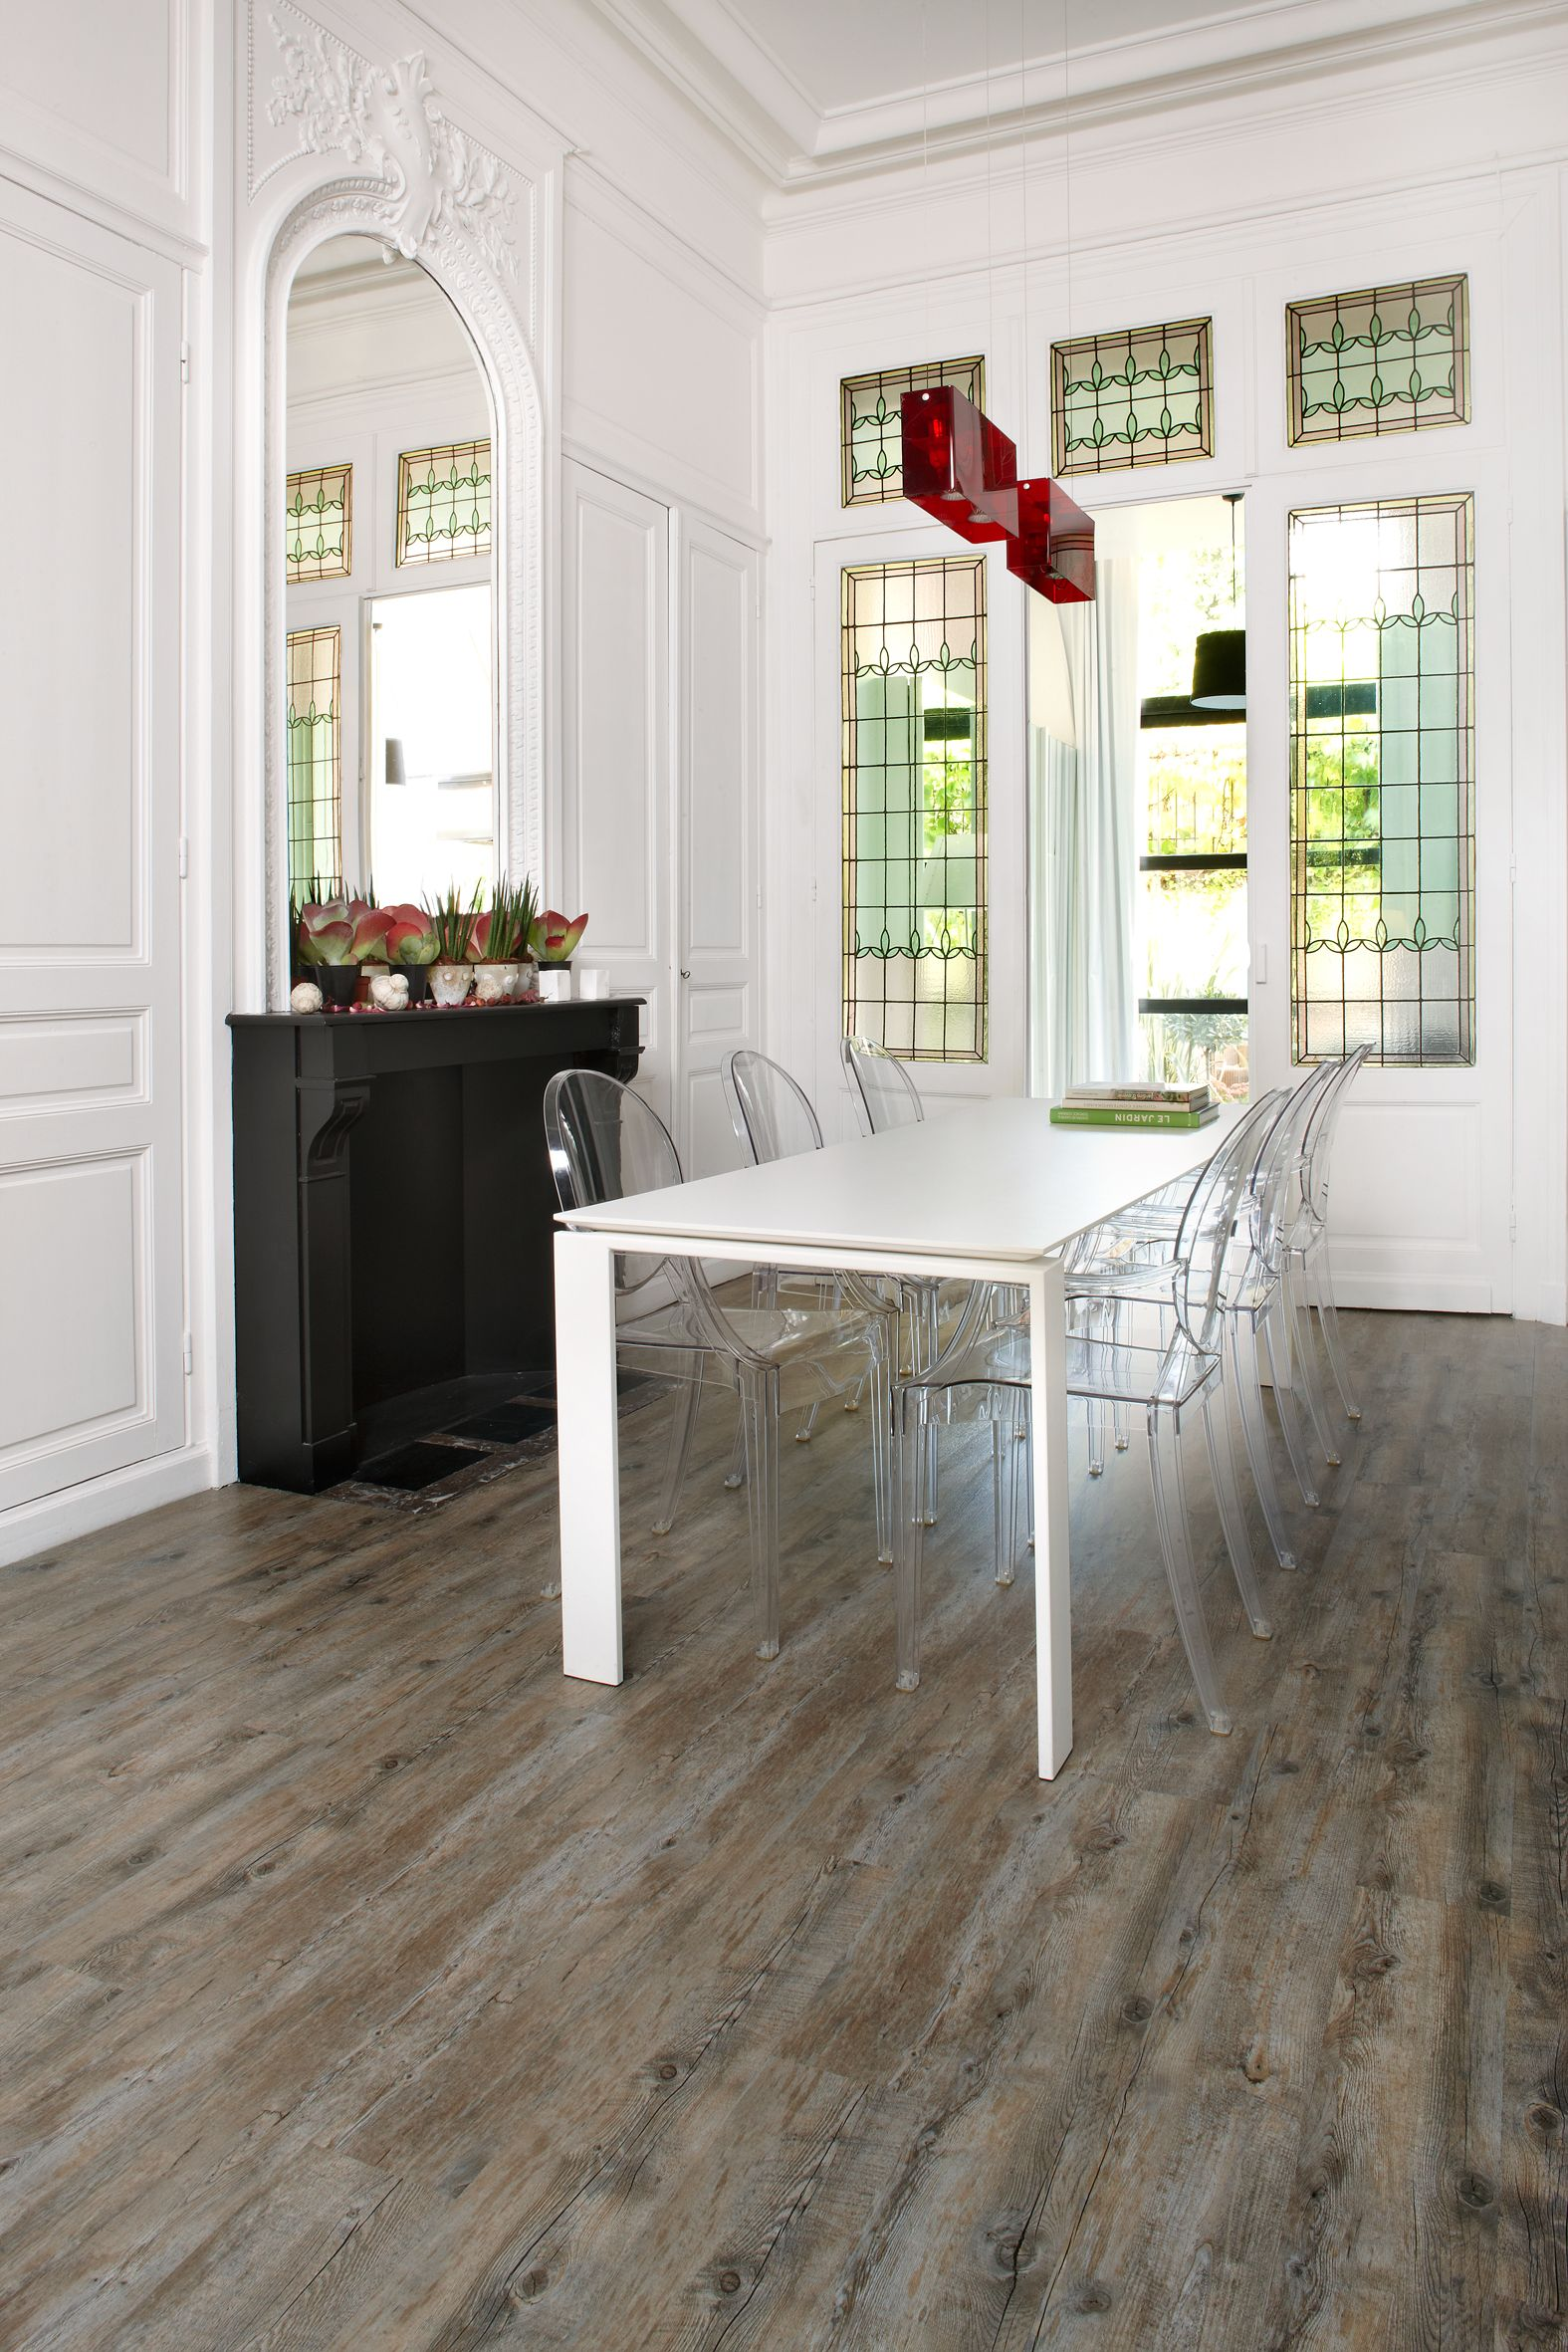 Berryalloc Pureloc Winter Wood Vinyl Laminate Flooring Luxury